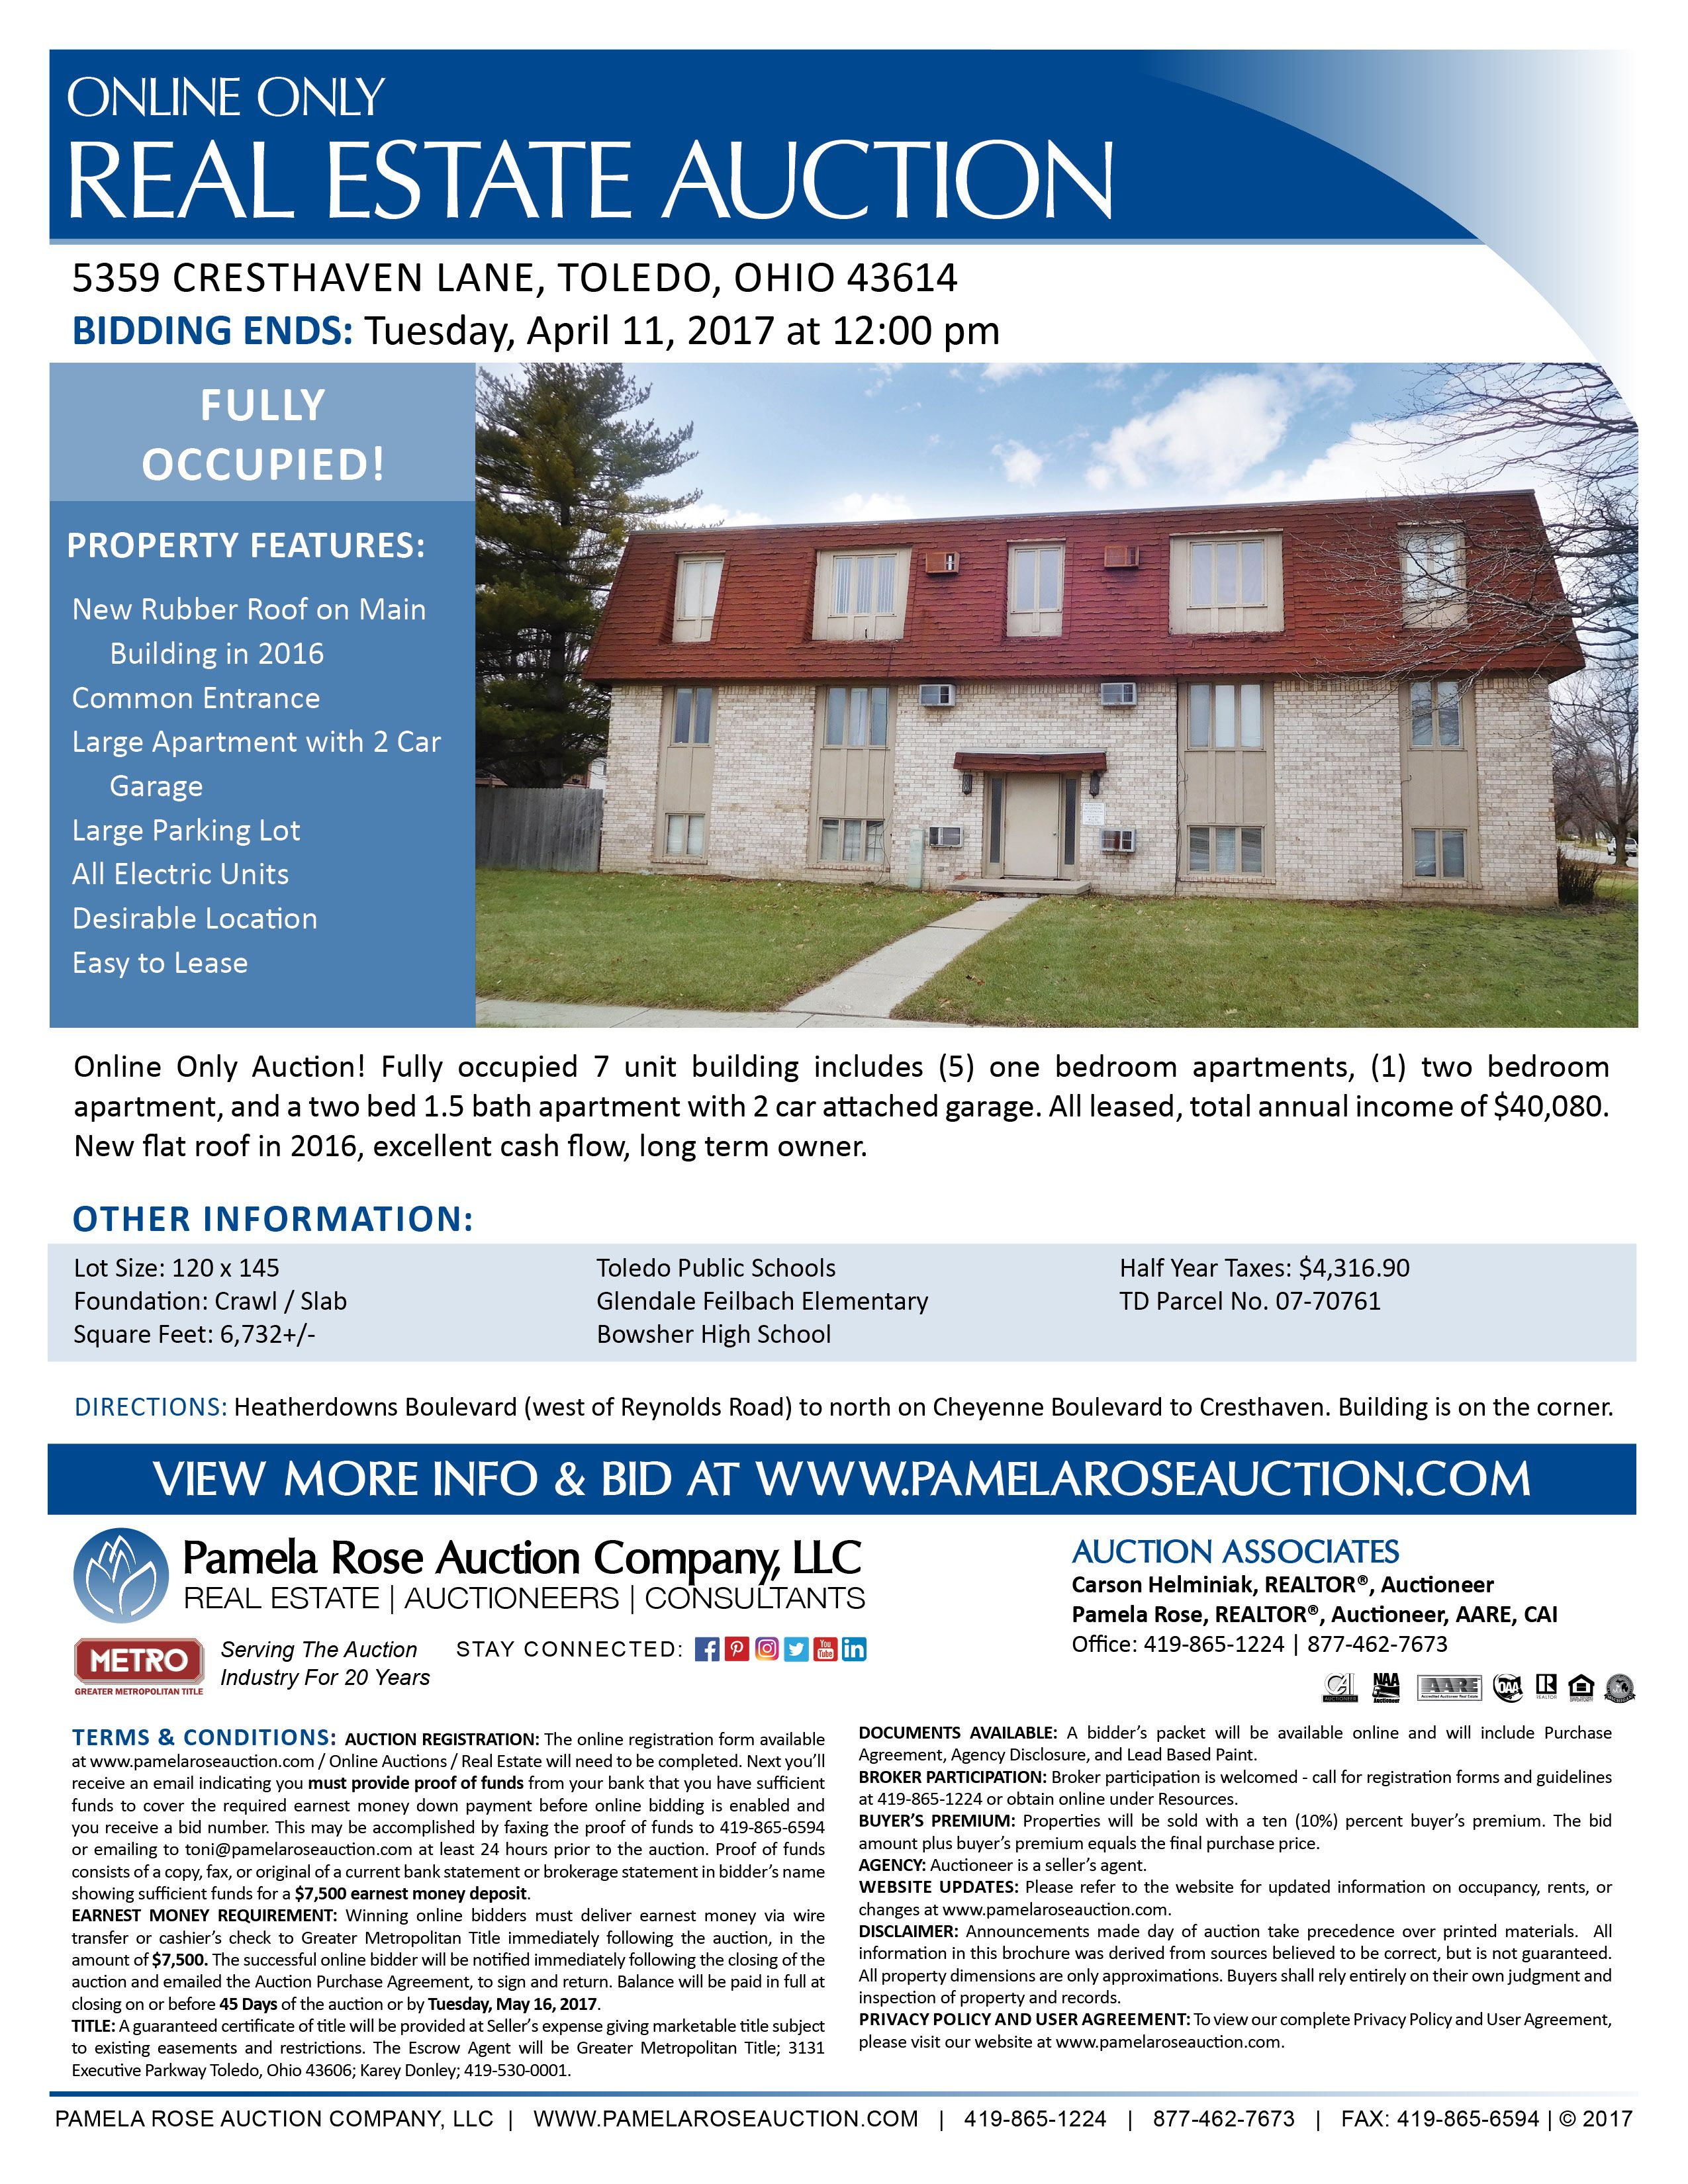 Fully occupied 7 unit buildingg online only auction 5359